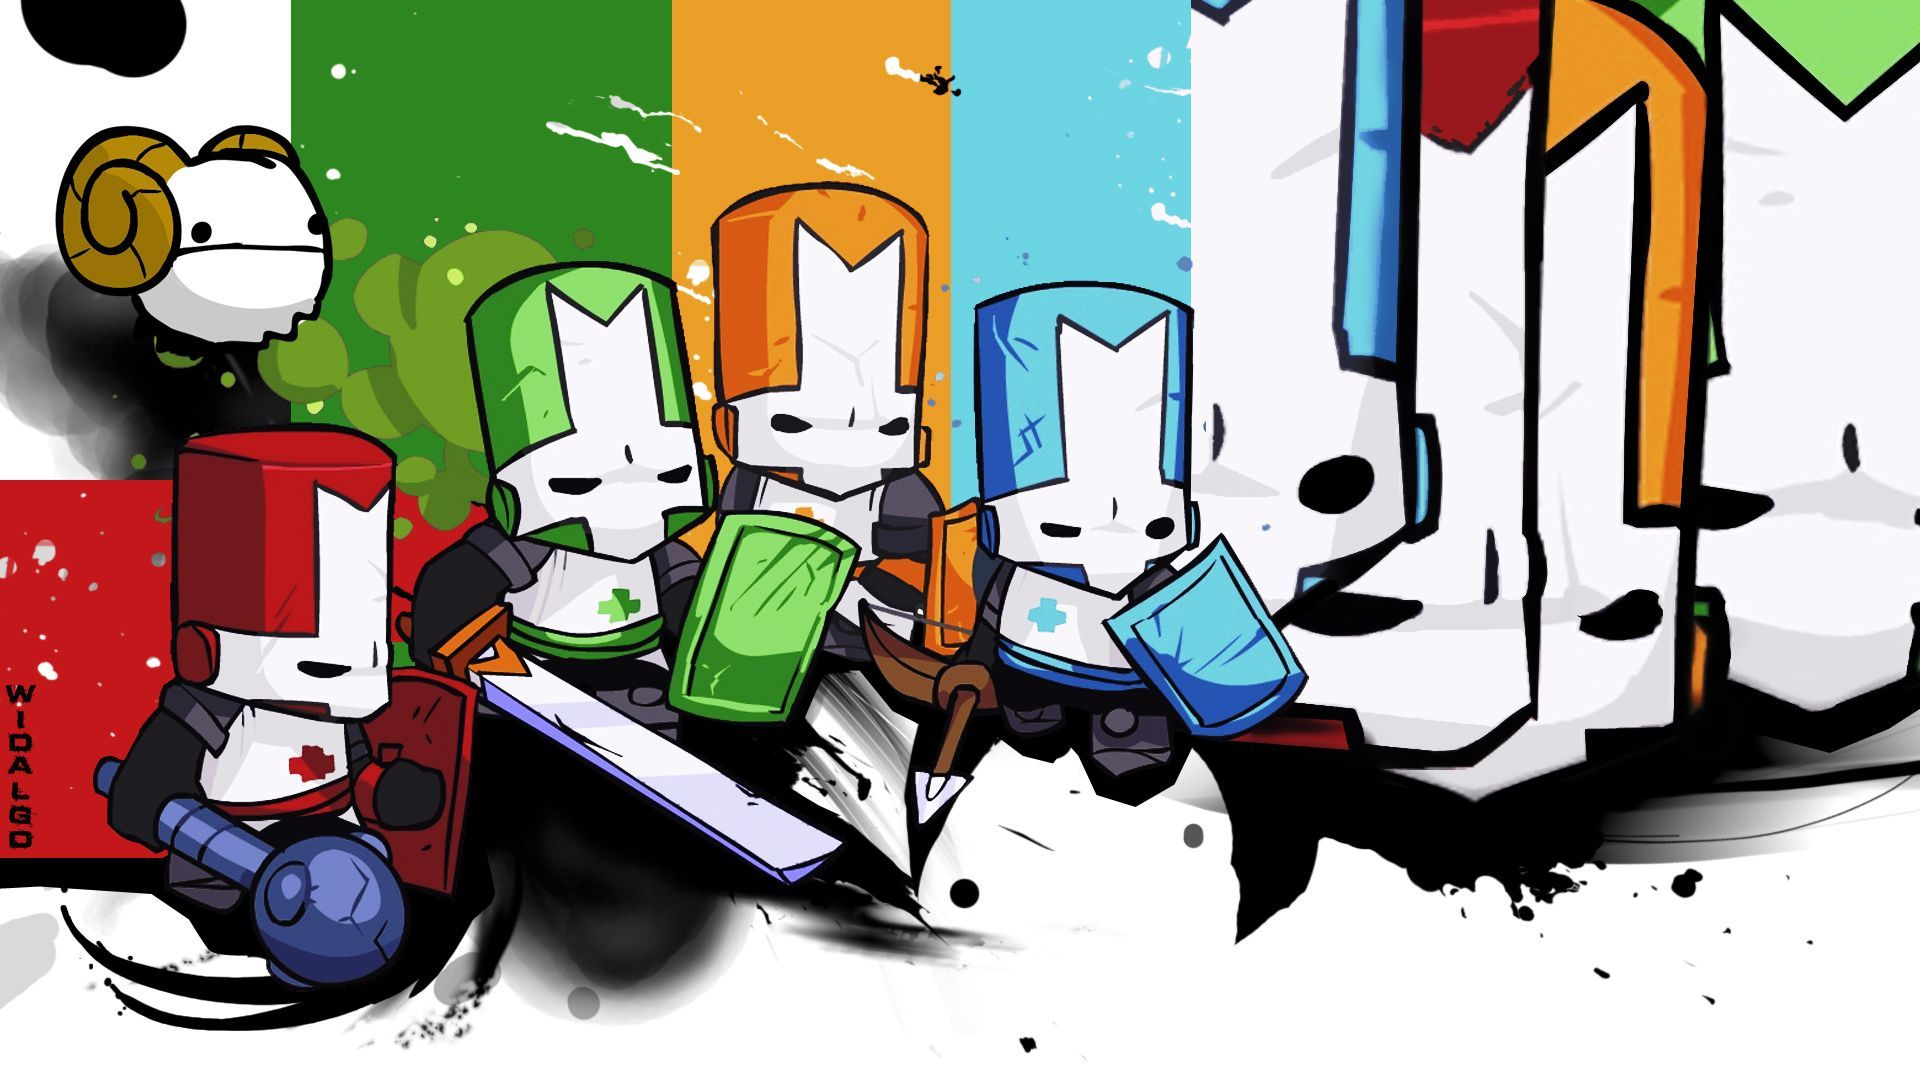 Castle Crashers Wallpapers Wallpaper Cave Castle Crashers Video Game Tattoo Castle